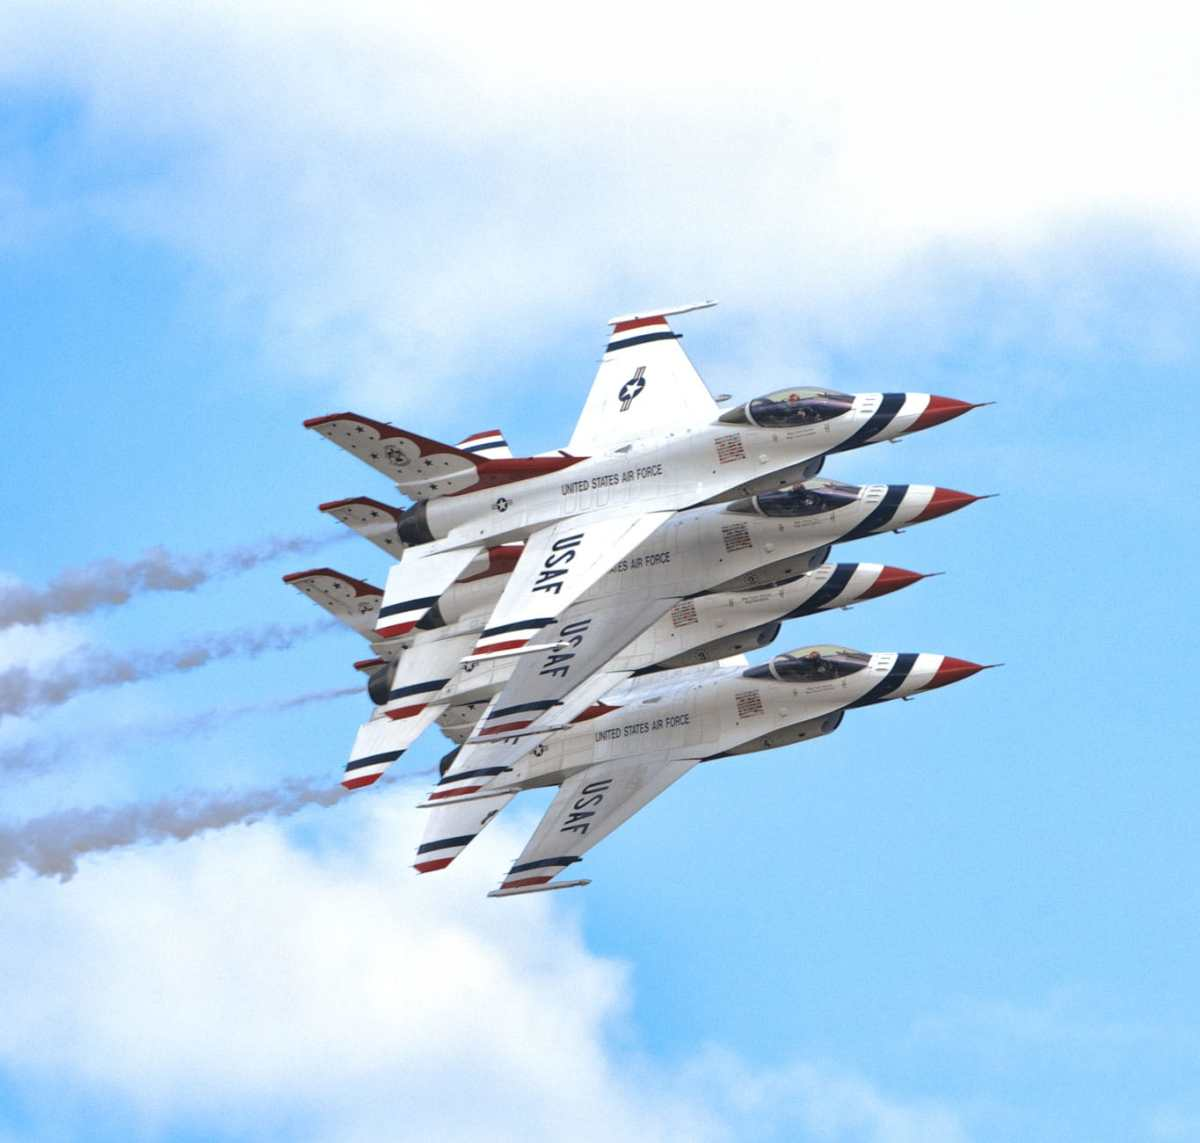 U.S. Air Force Thunderbirds 2017 Andrews Air Show